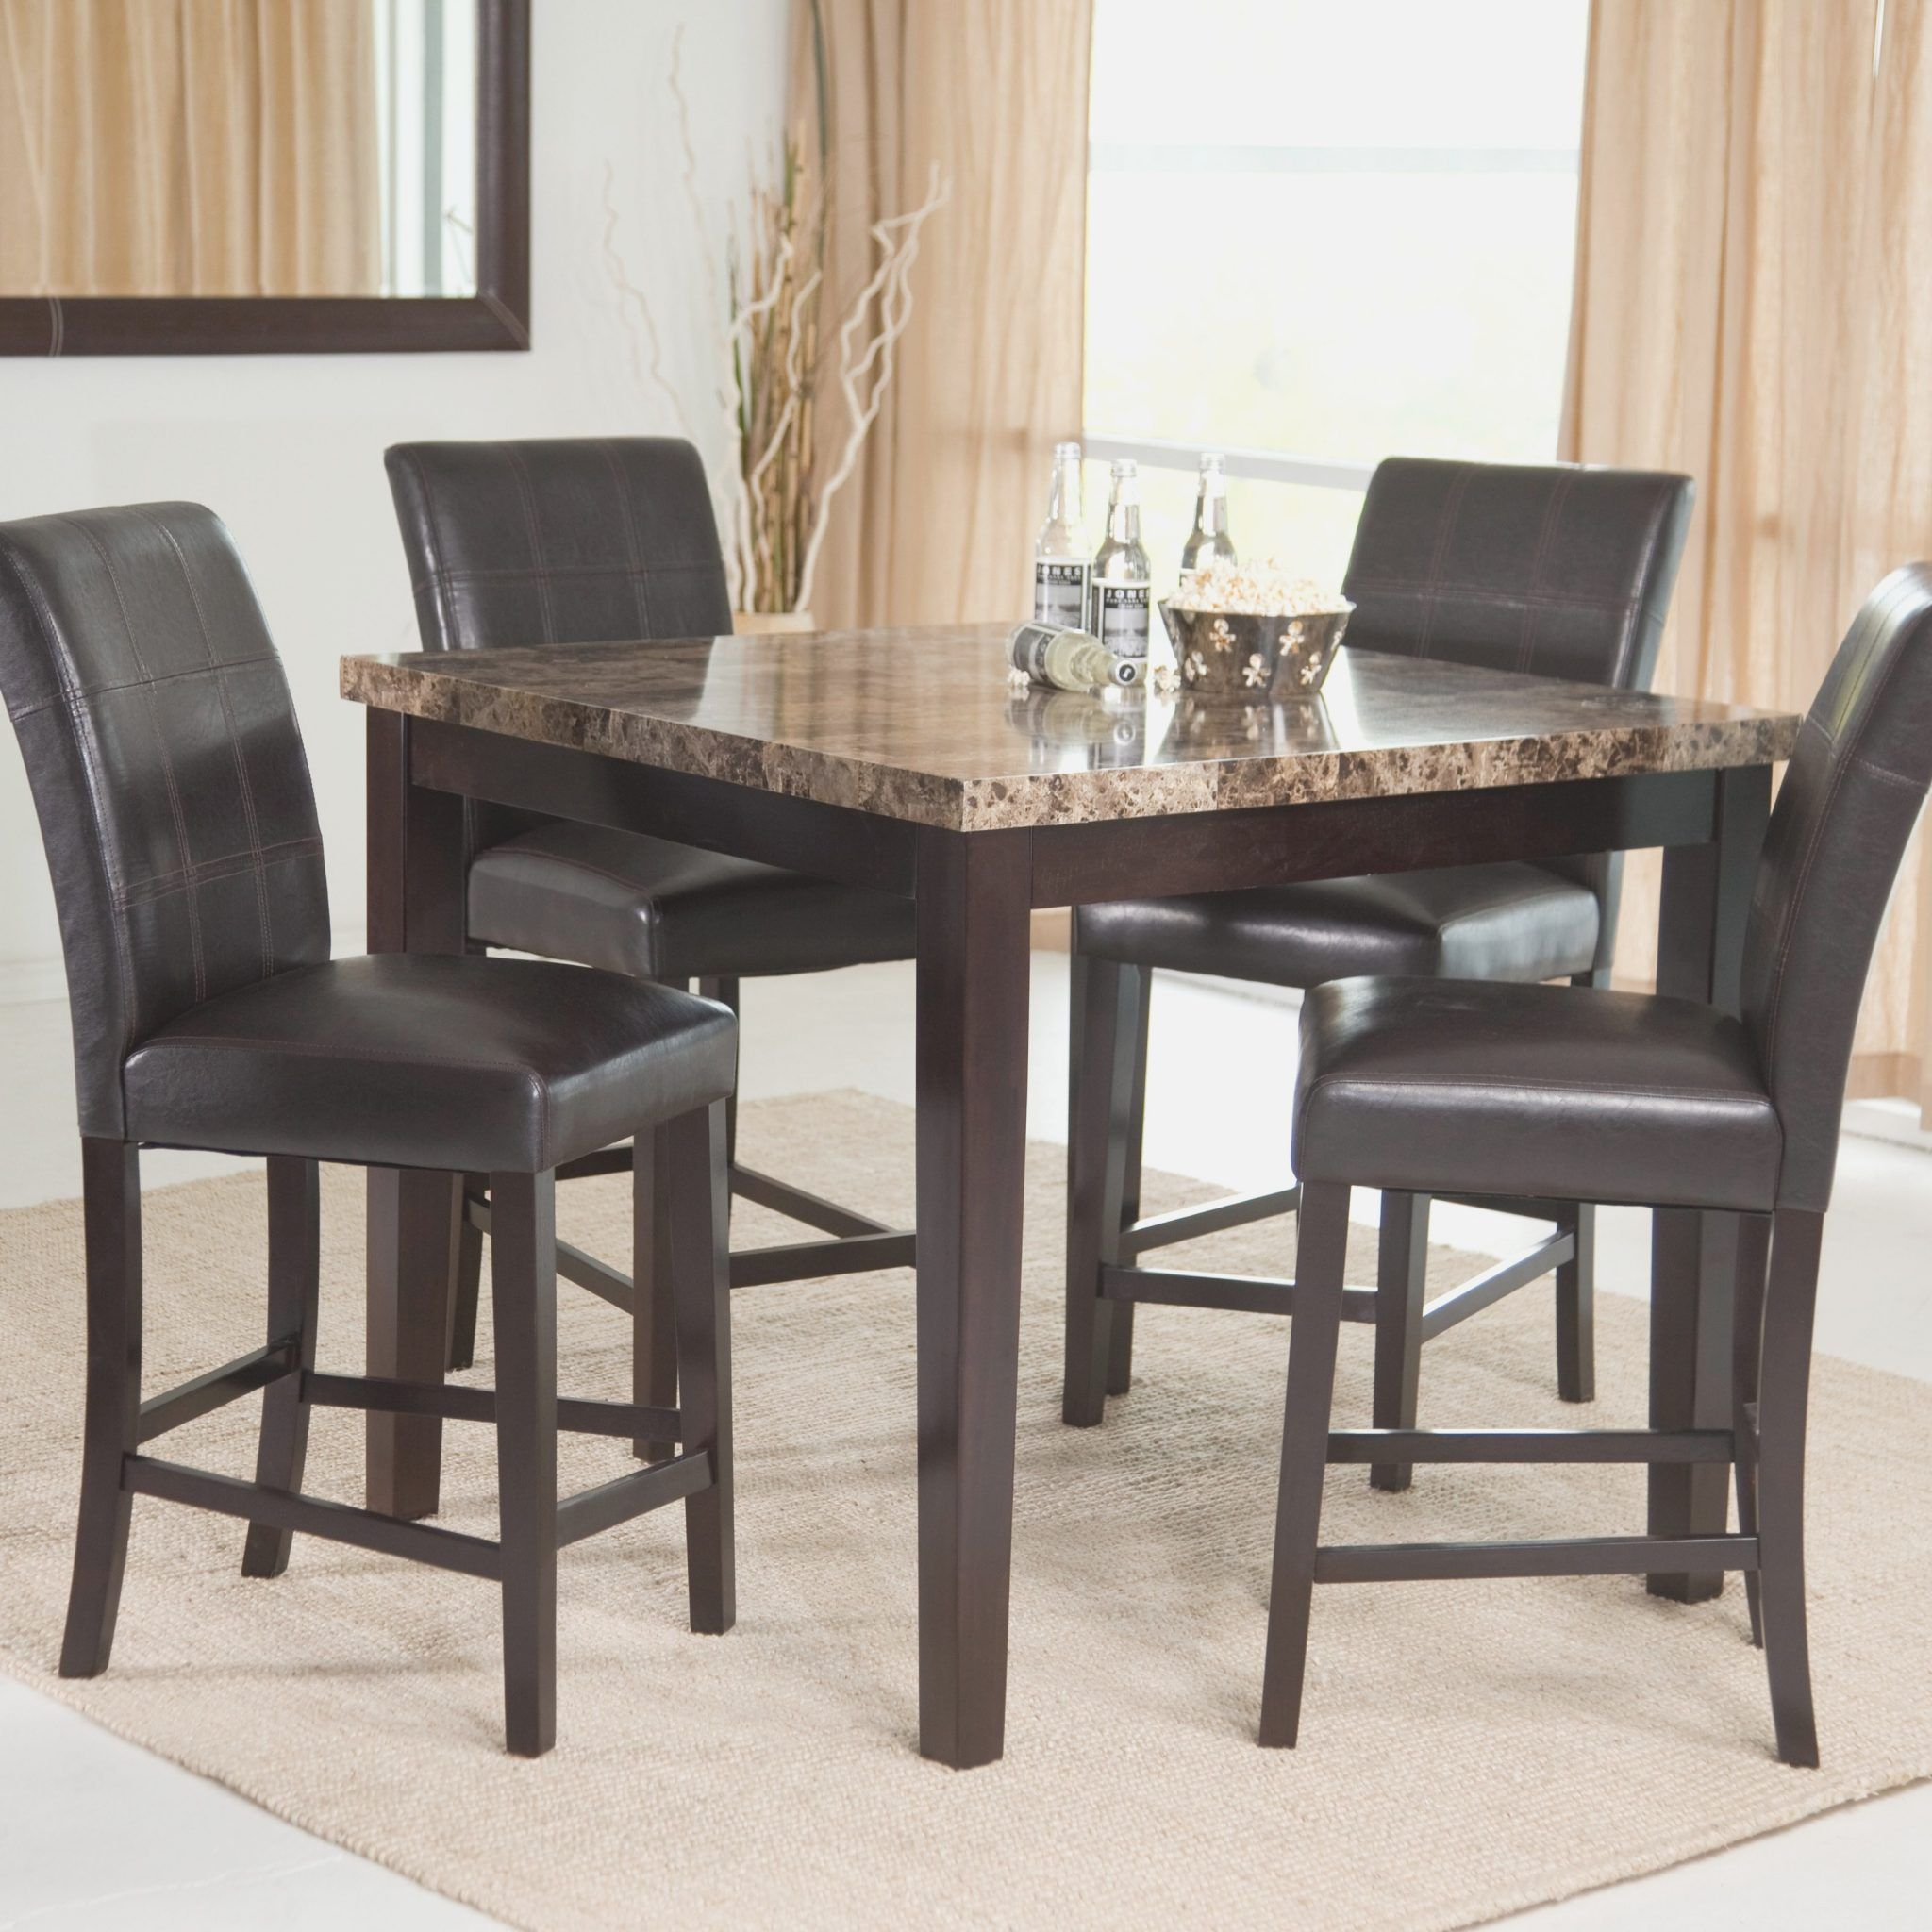 Small round kitchen table and chairs round round kitchen table and chairs uk